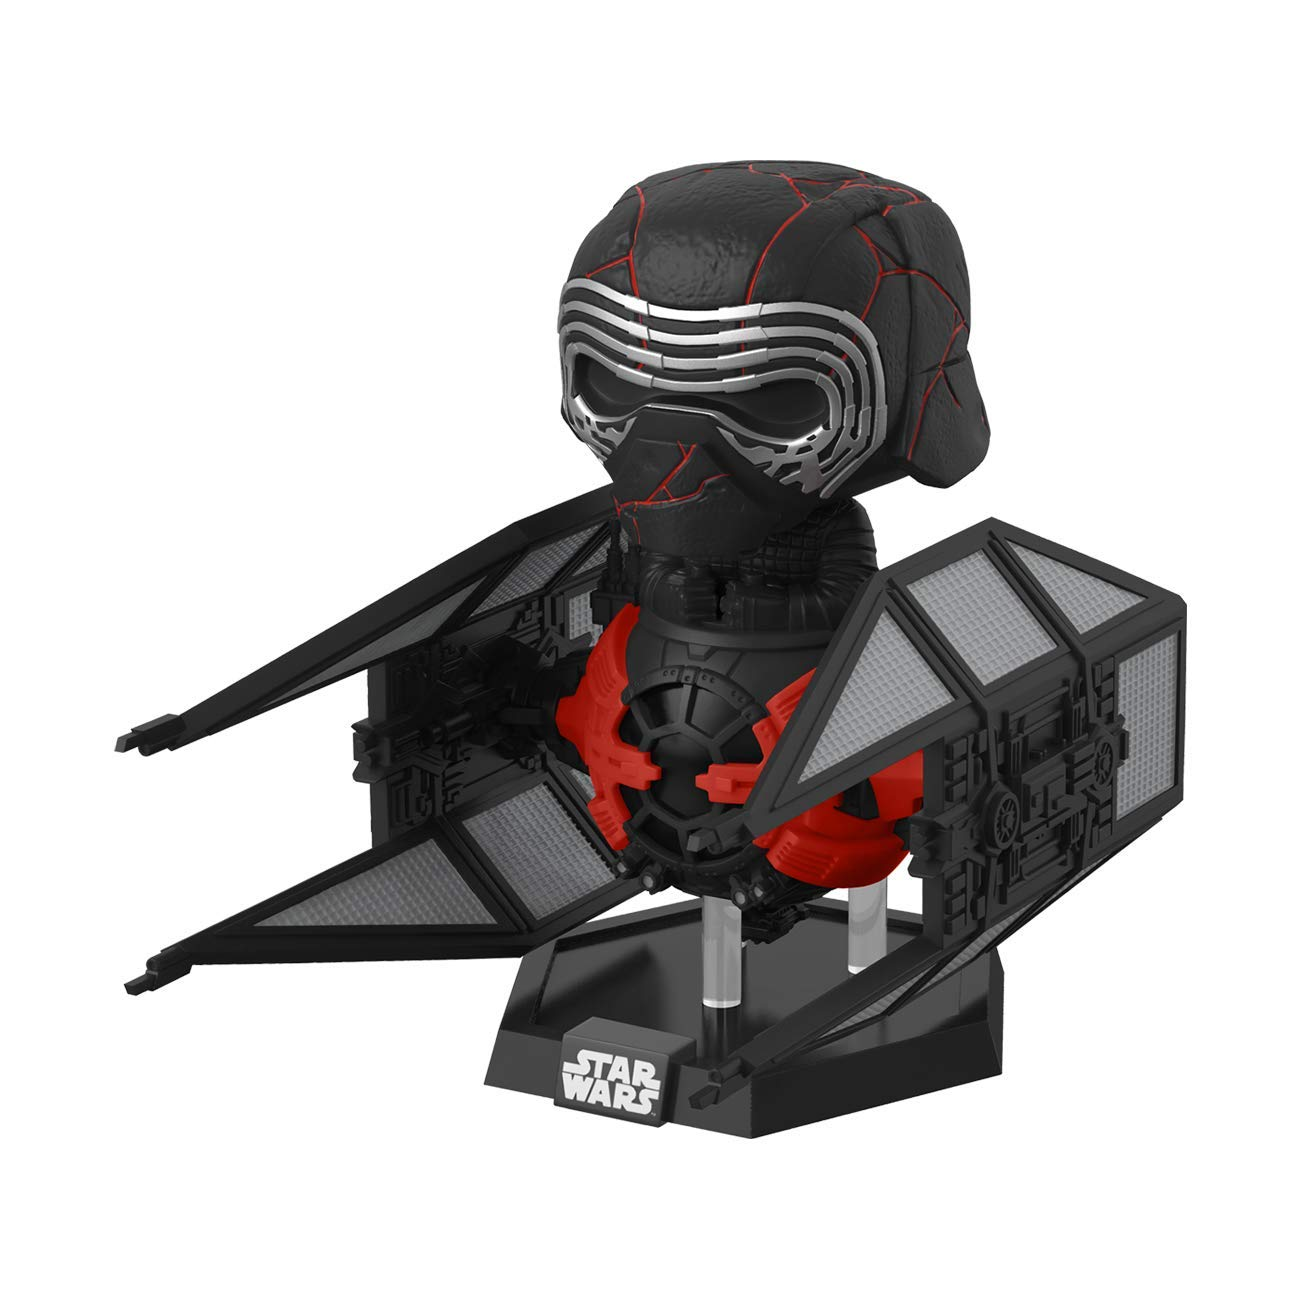 61H4Vz1zurL. SL1300 - Funko Pop! Deluxe Star Wars: Episode 9, Rise of Skywalker - Supreme Leader Kylo Ren in The Whisper